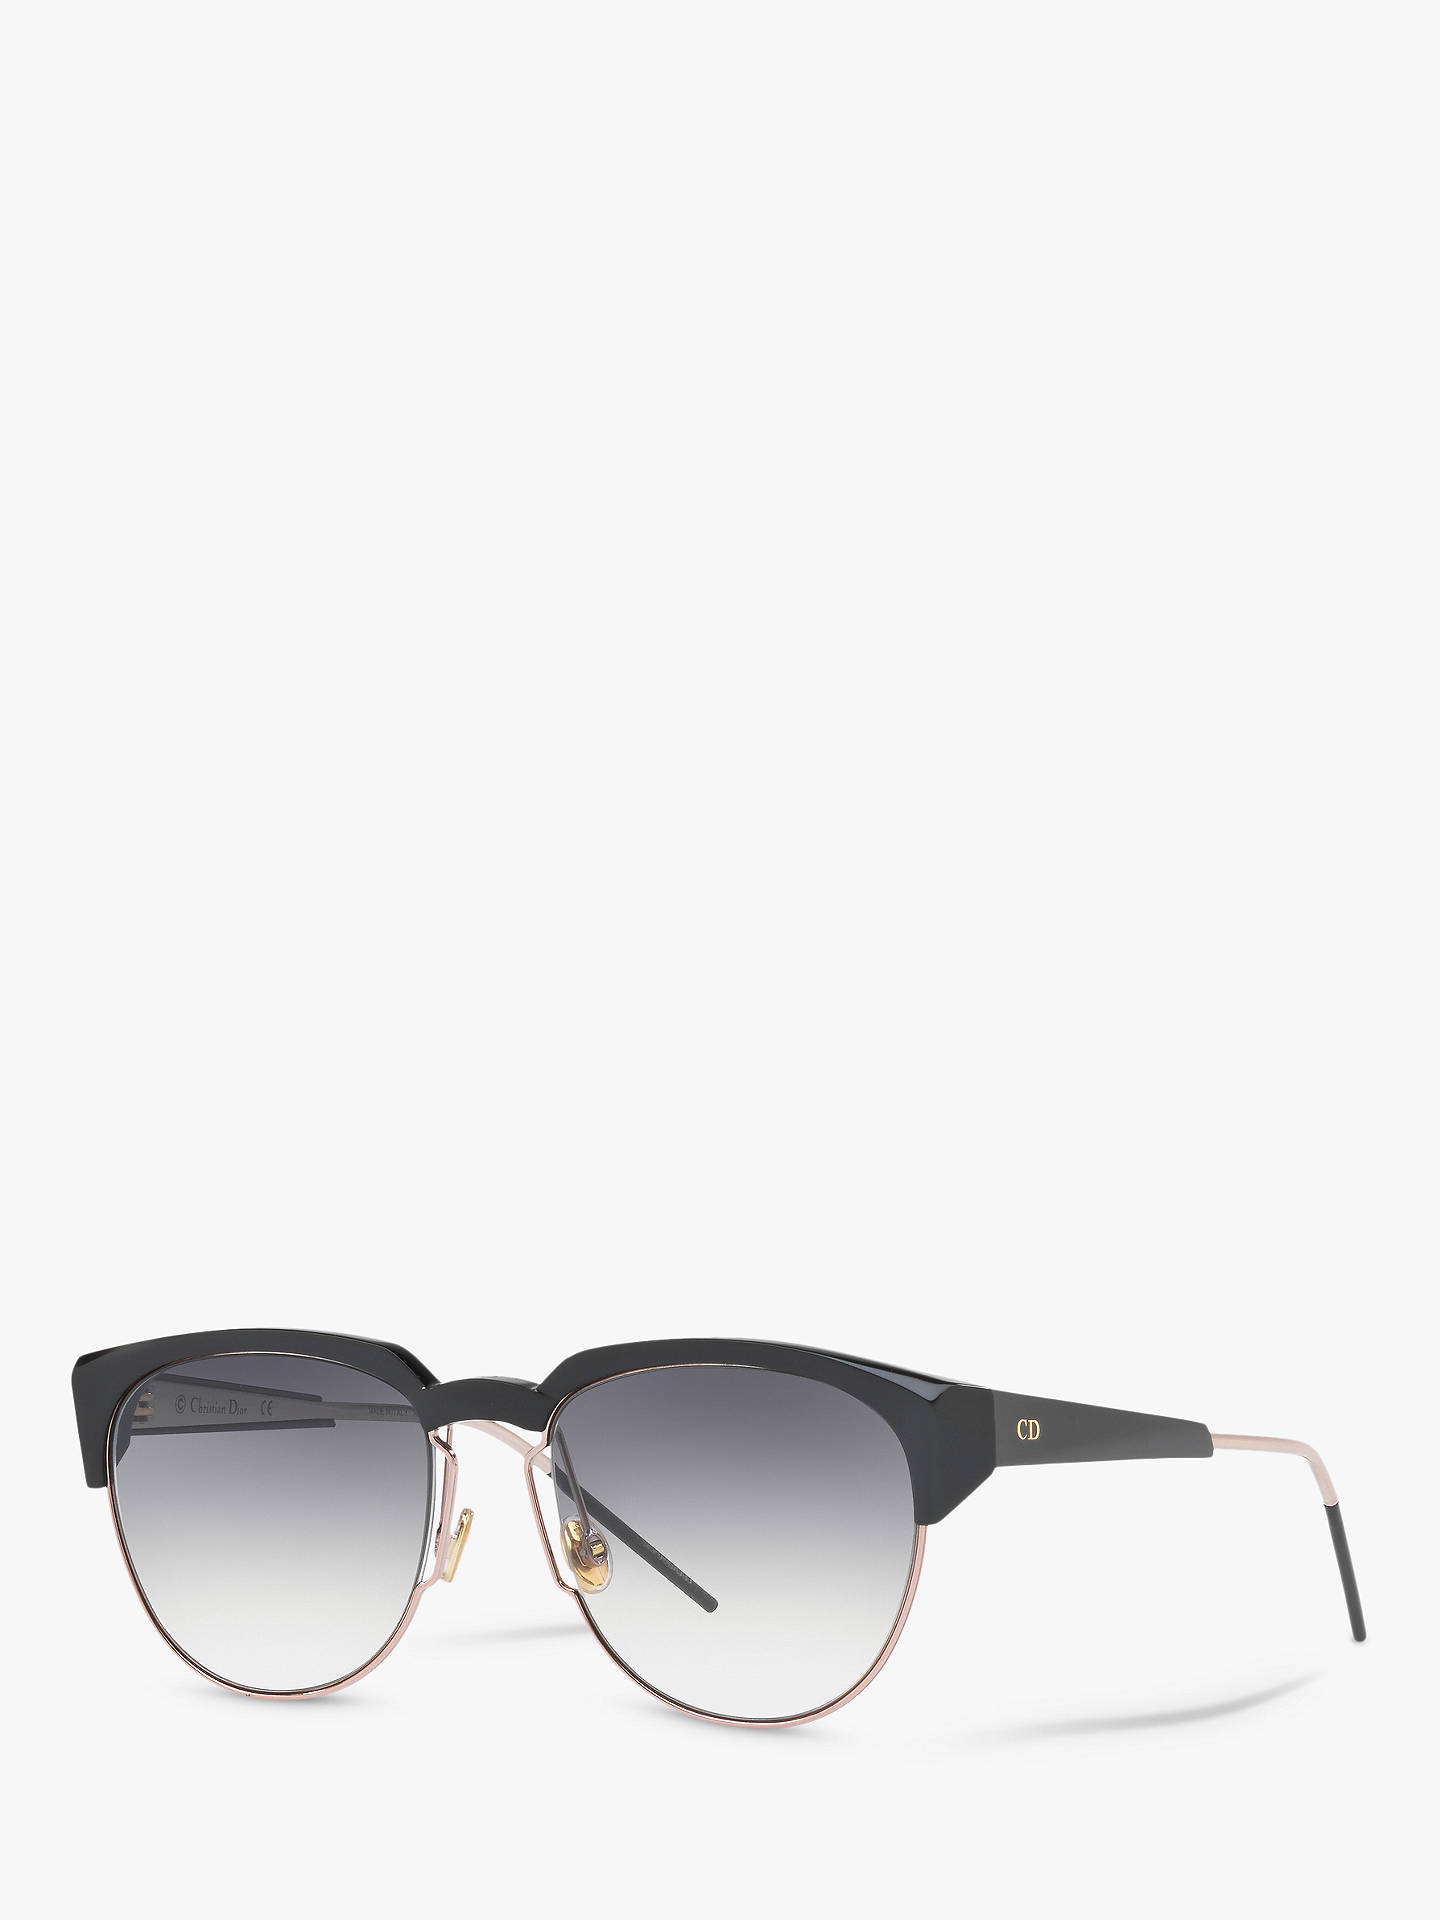 93904d02454c Buy Dior Spectral Women s Round Sunglasses